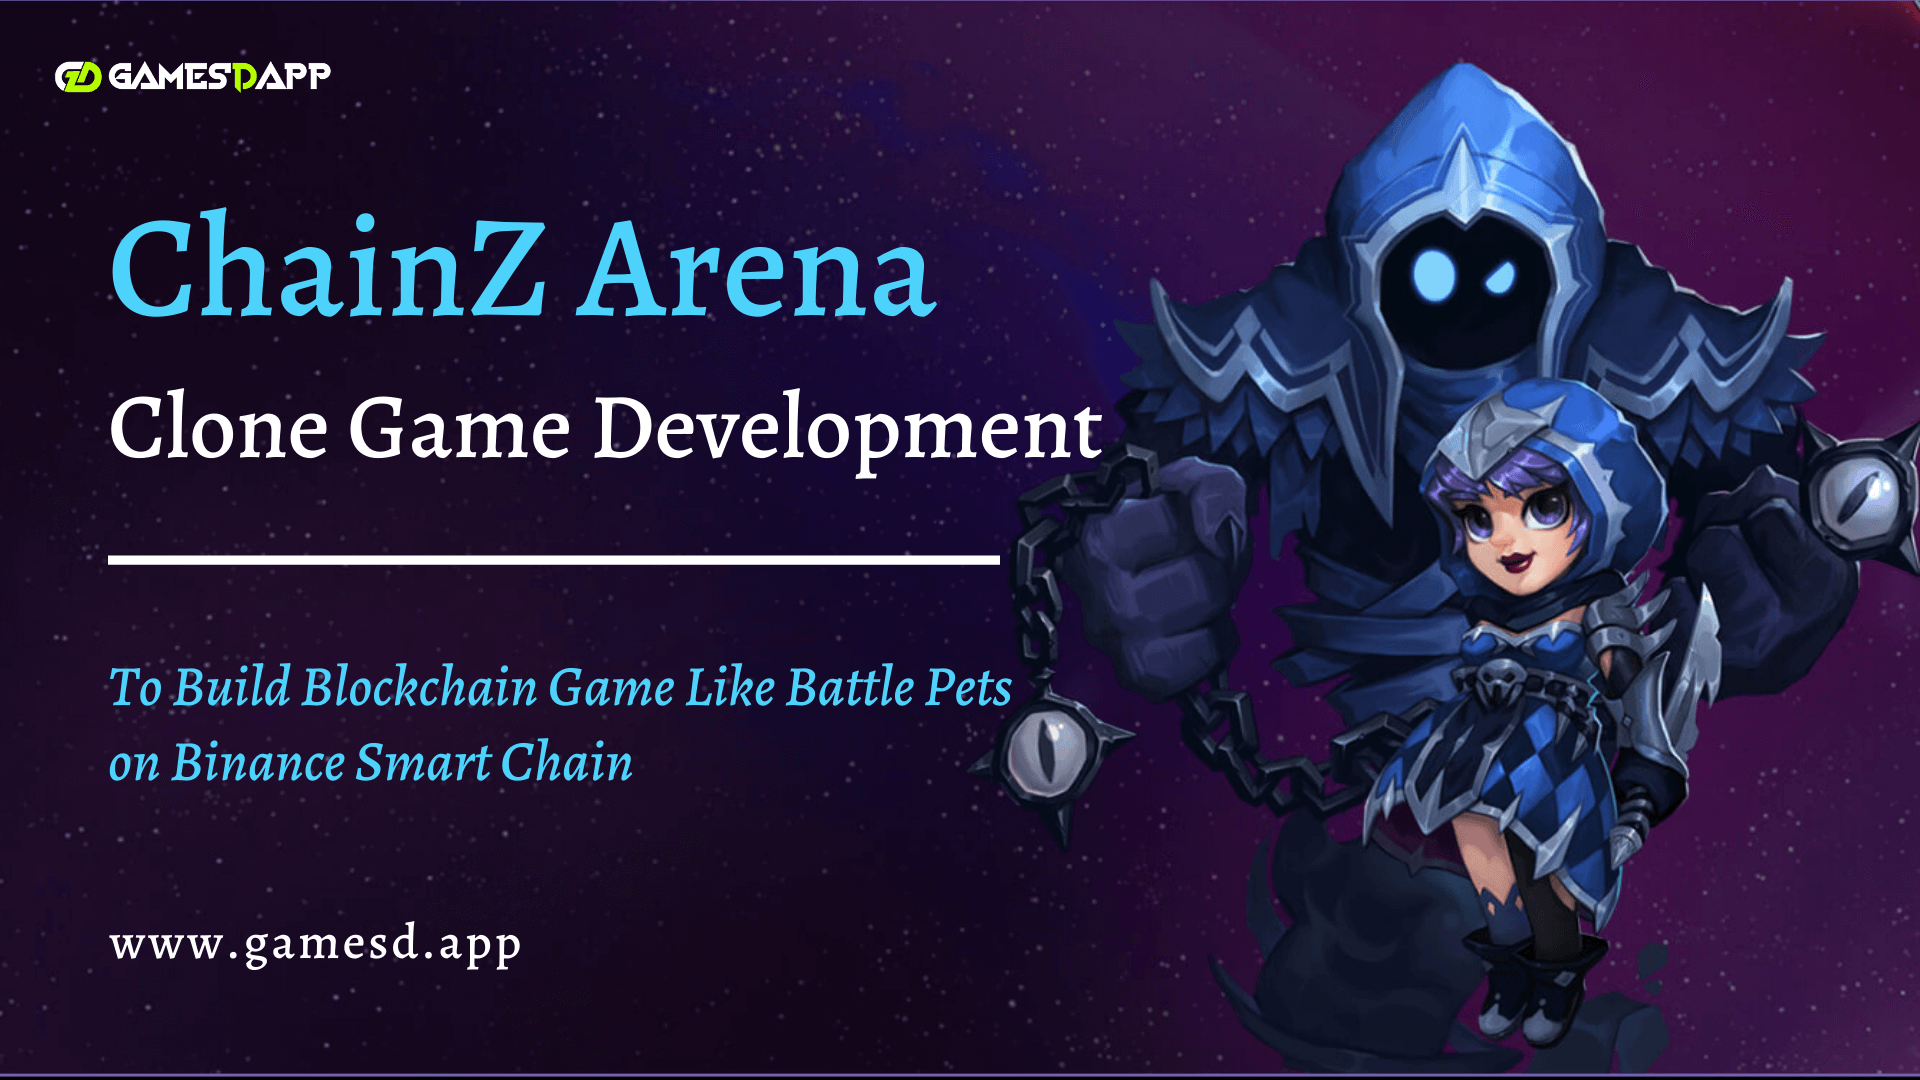 ChainZ Arena Game Clone Development - To Build Popular Blockchain RPG Game Like ChainZ Arena on Binance Smart Chain